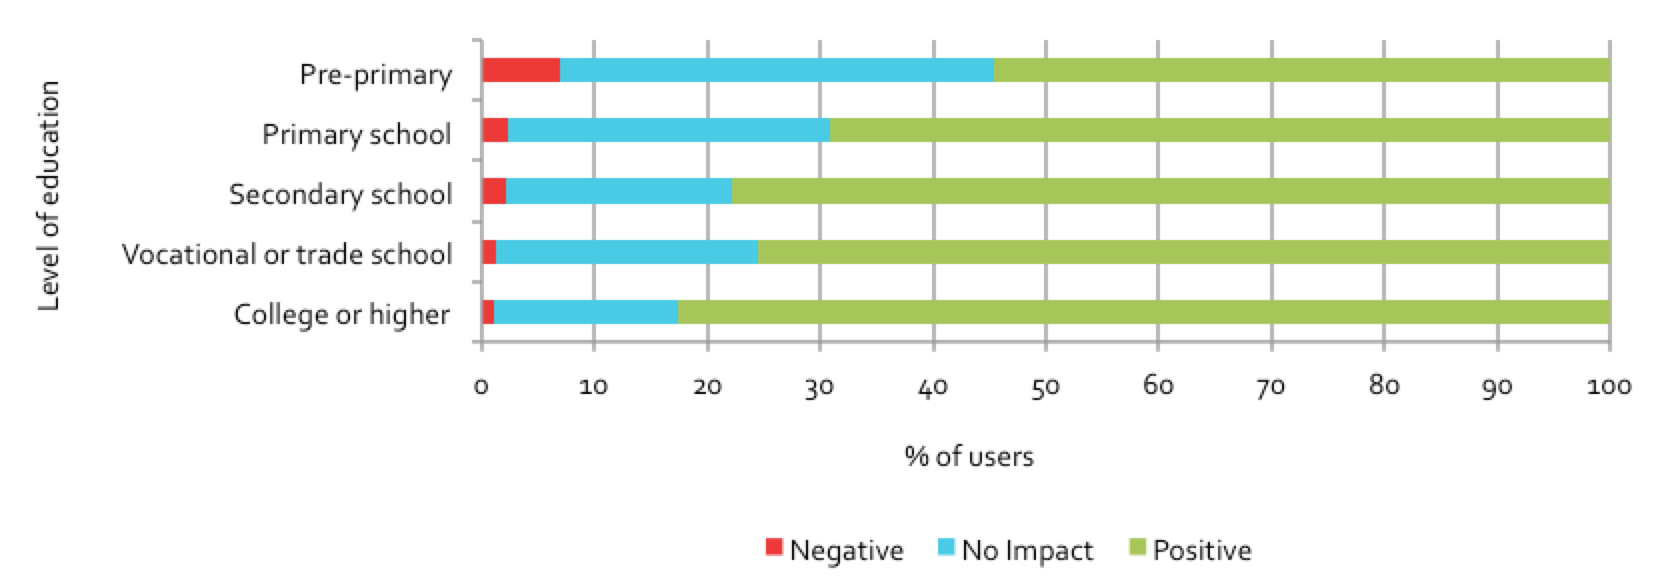 Figure 5.20: Users reporting positive impact on employability resources, by education level